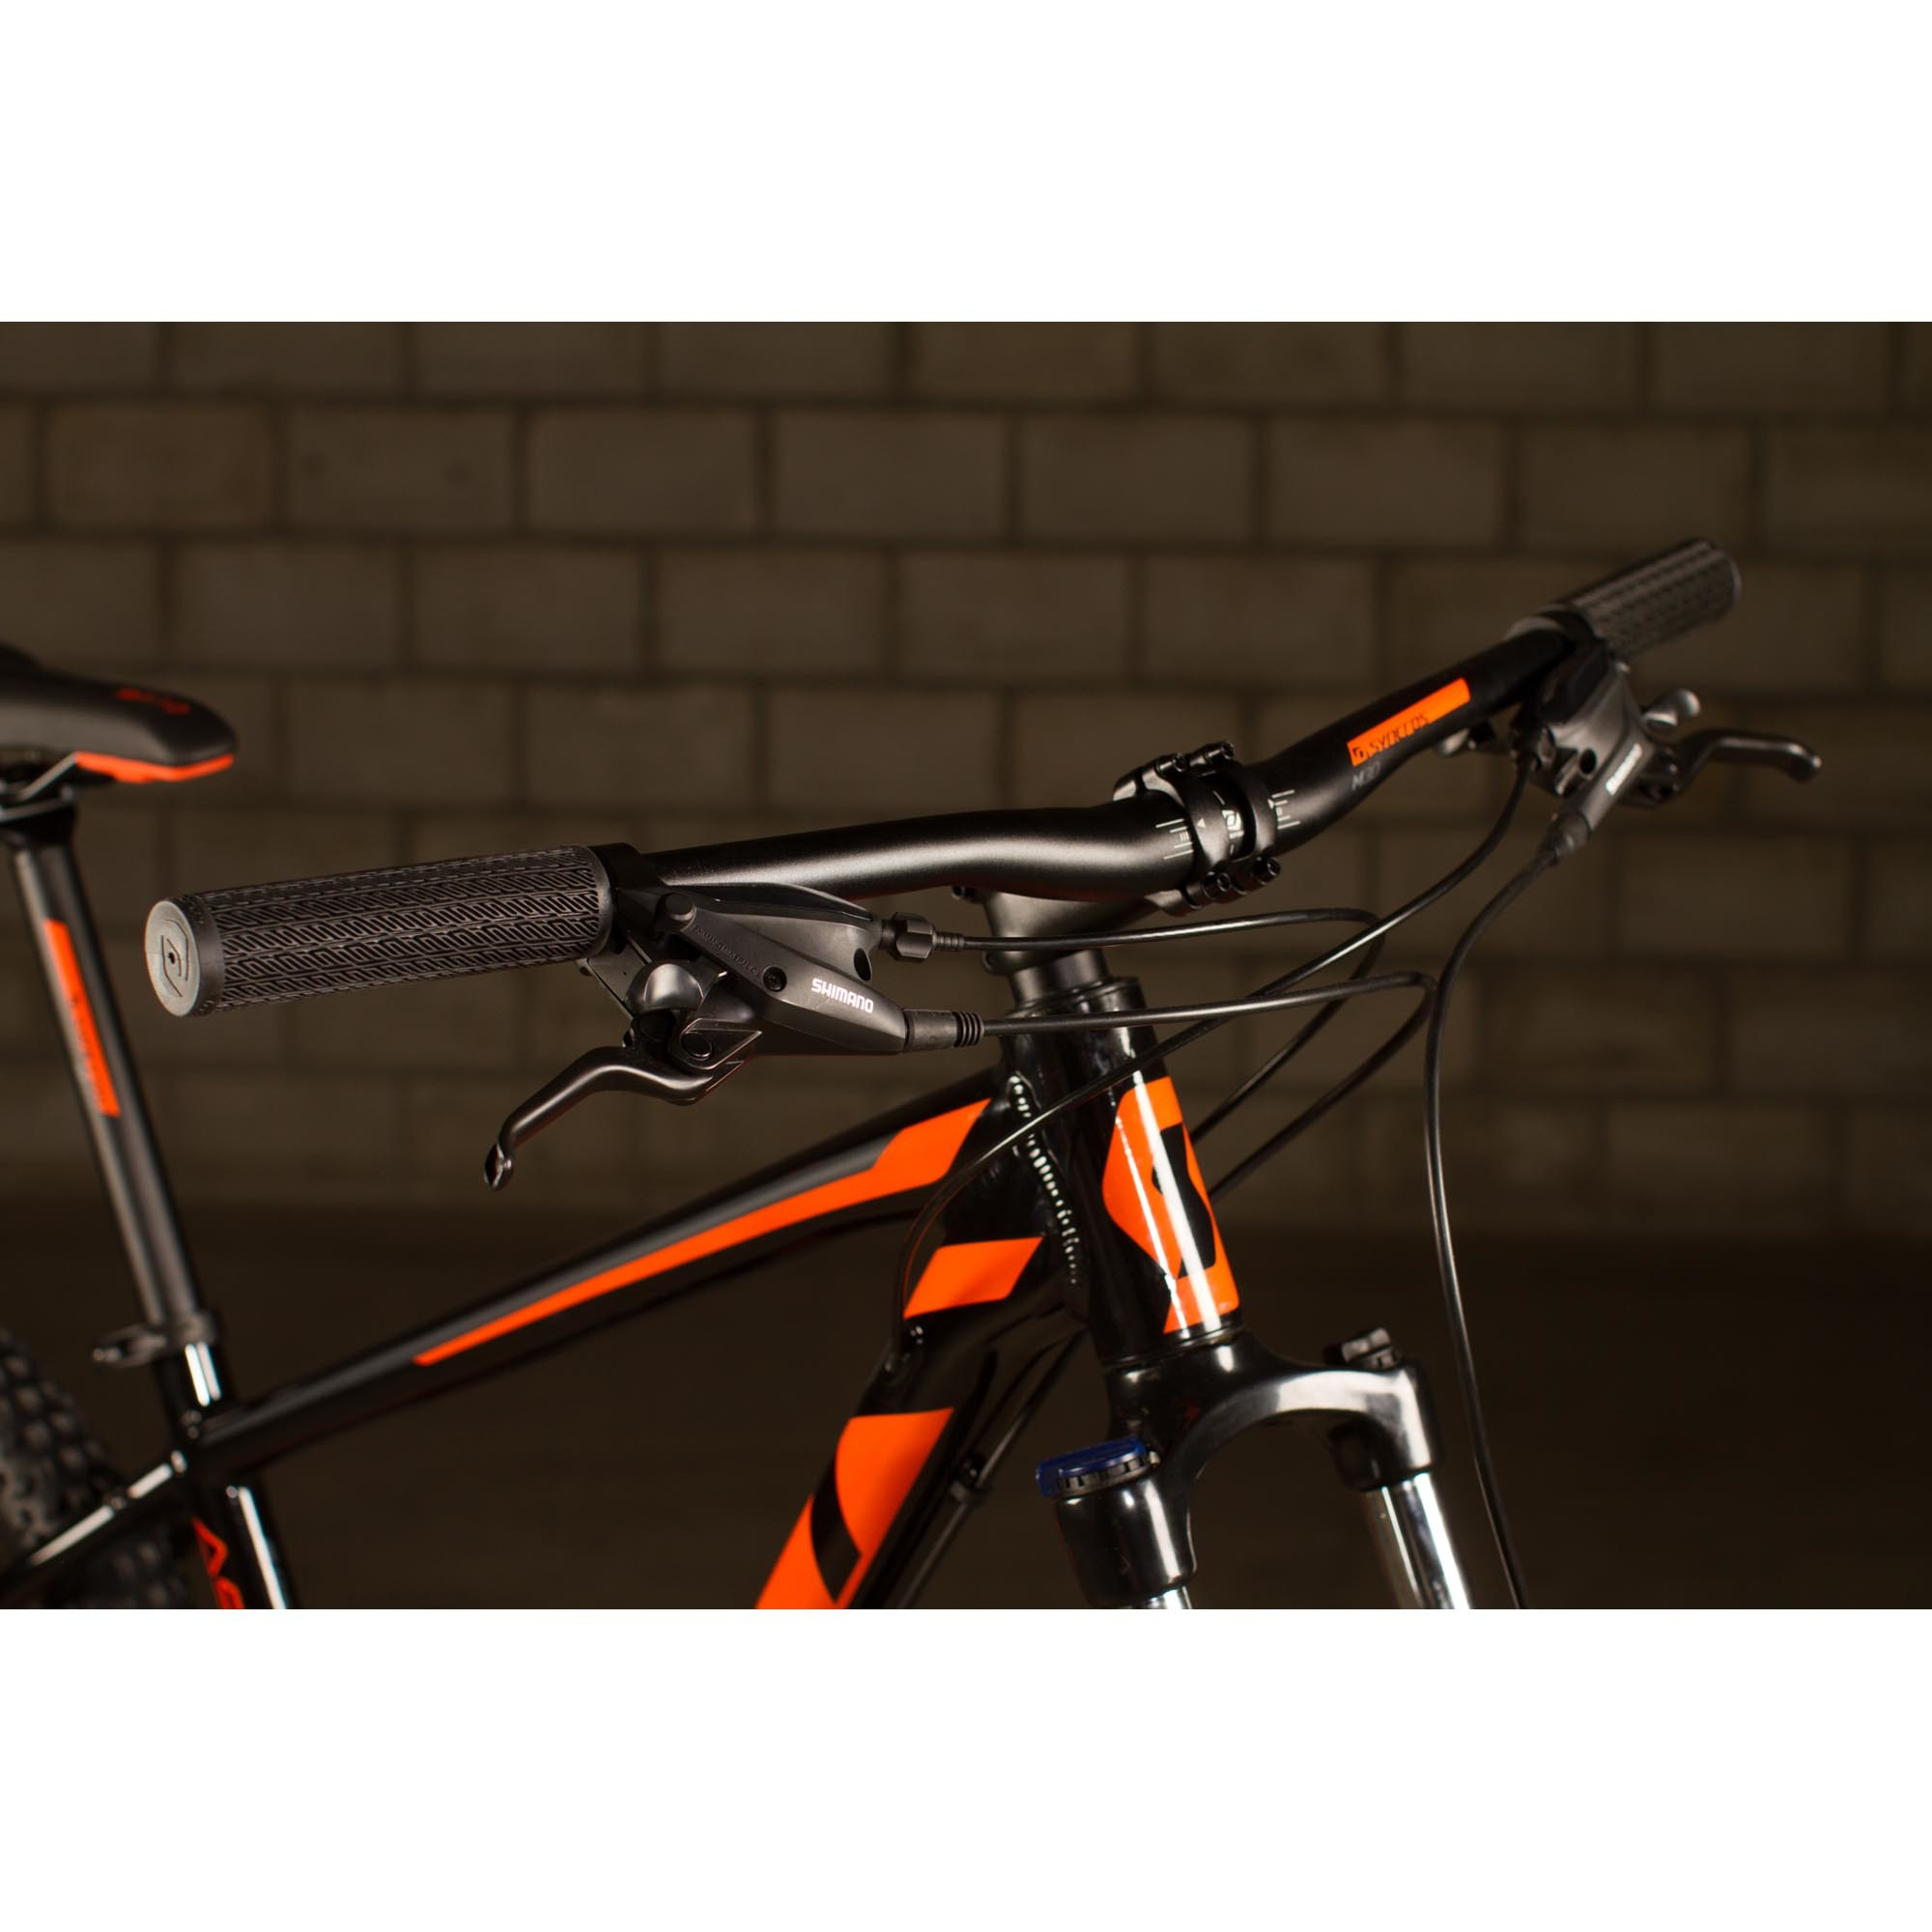 Bicicletta SCOTT Aspect 950 black/orange